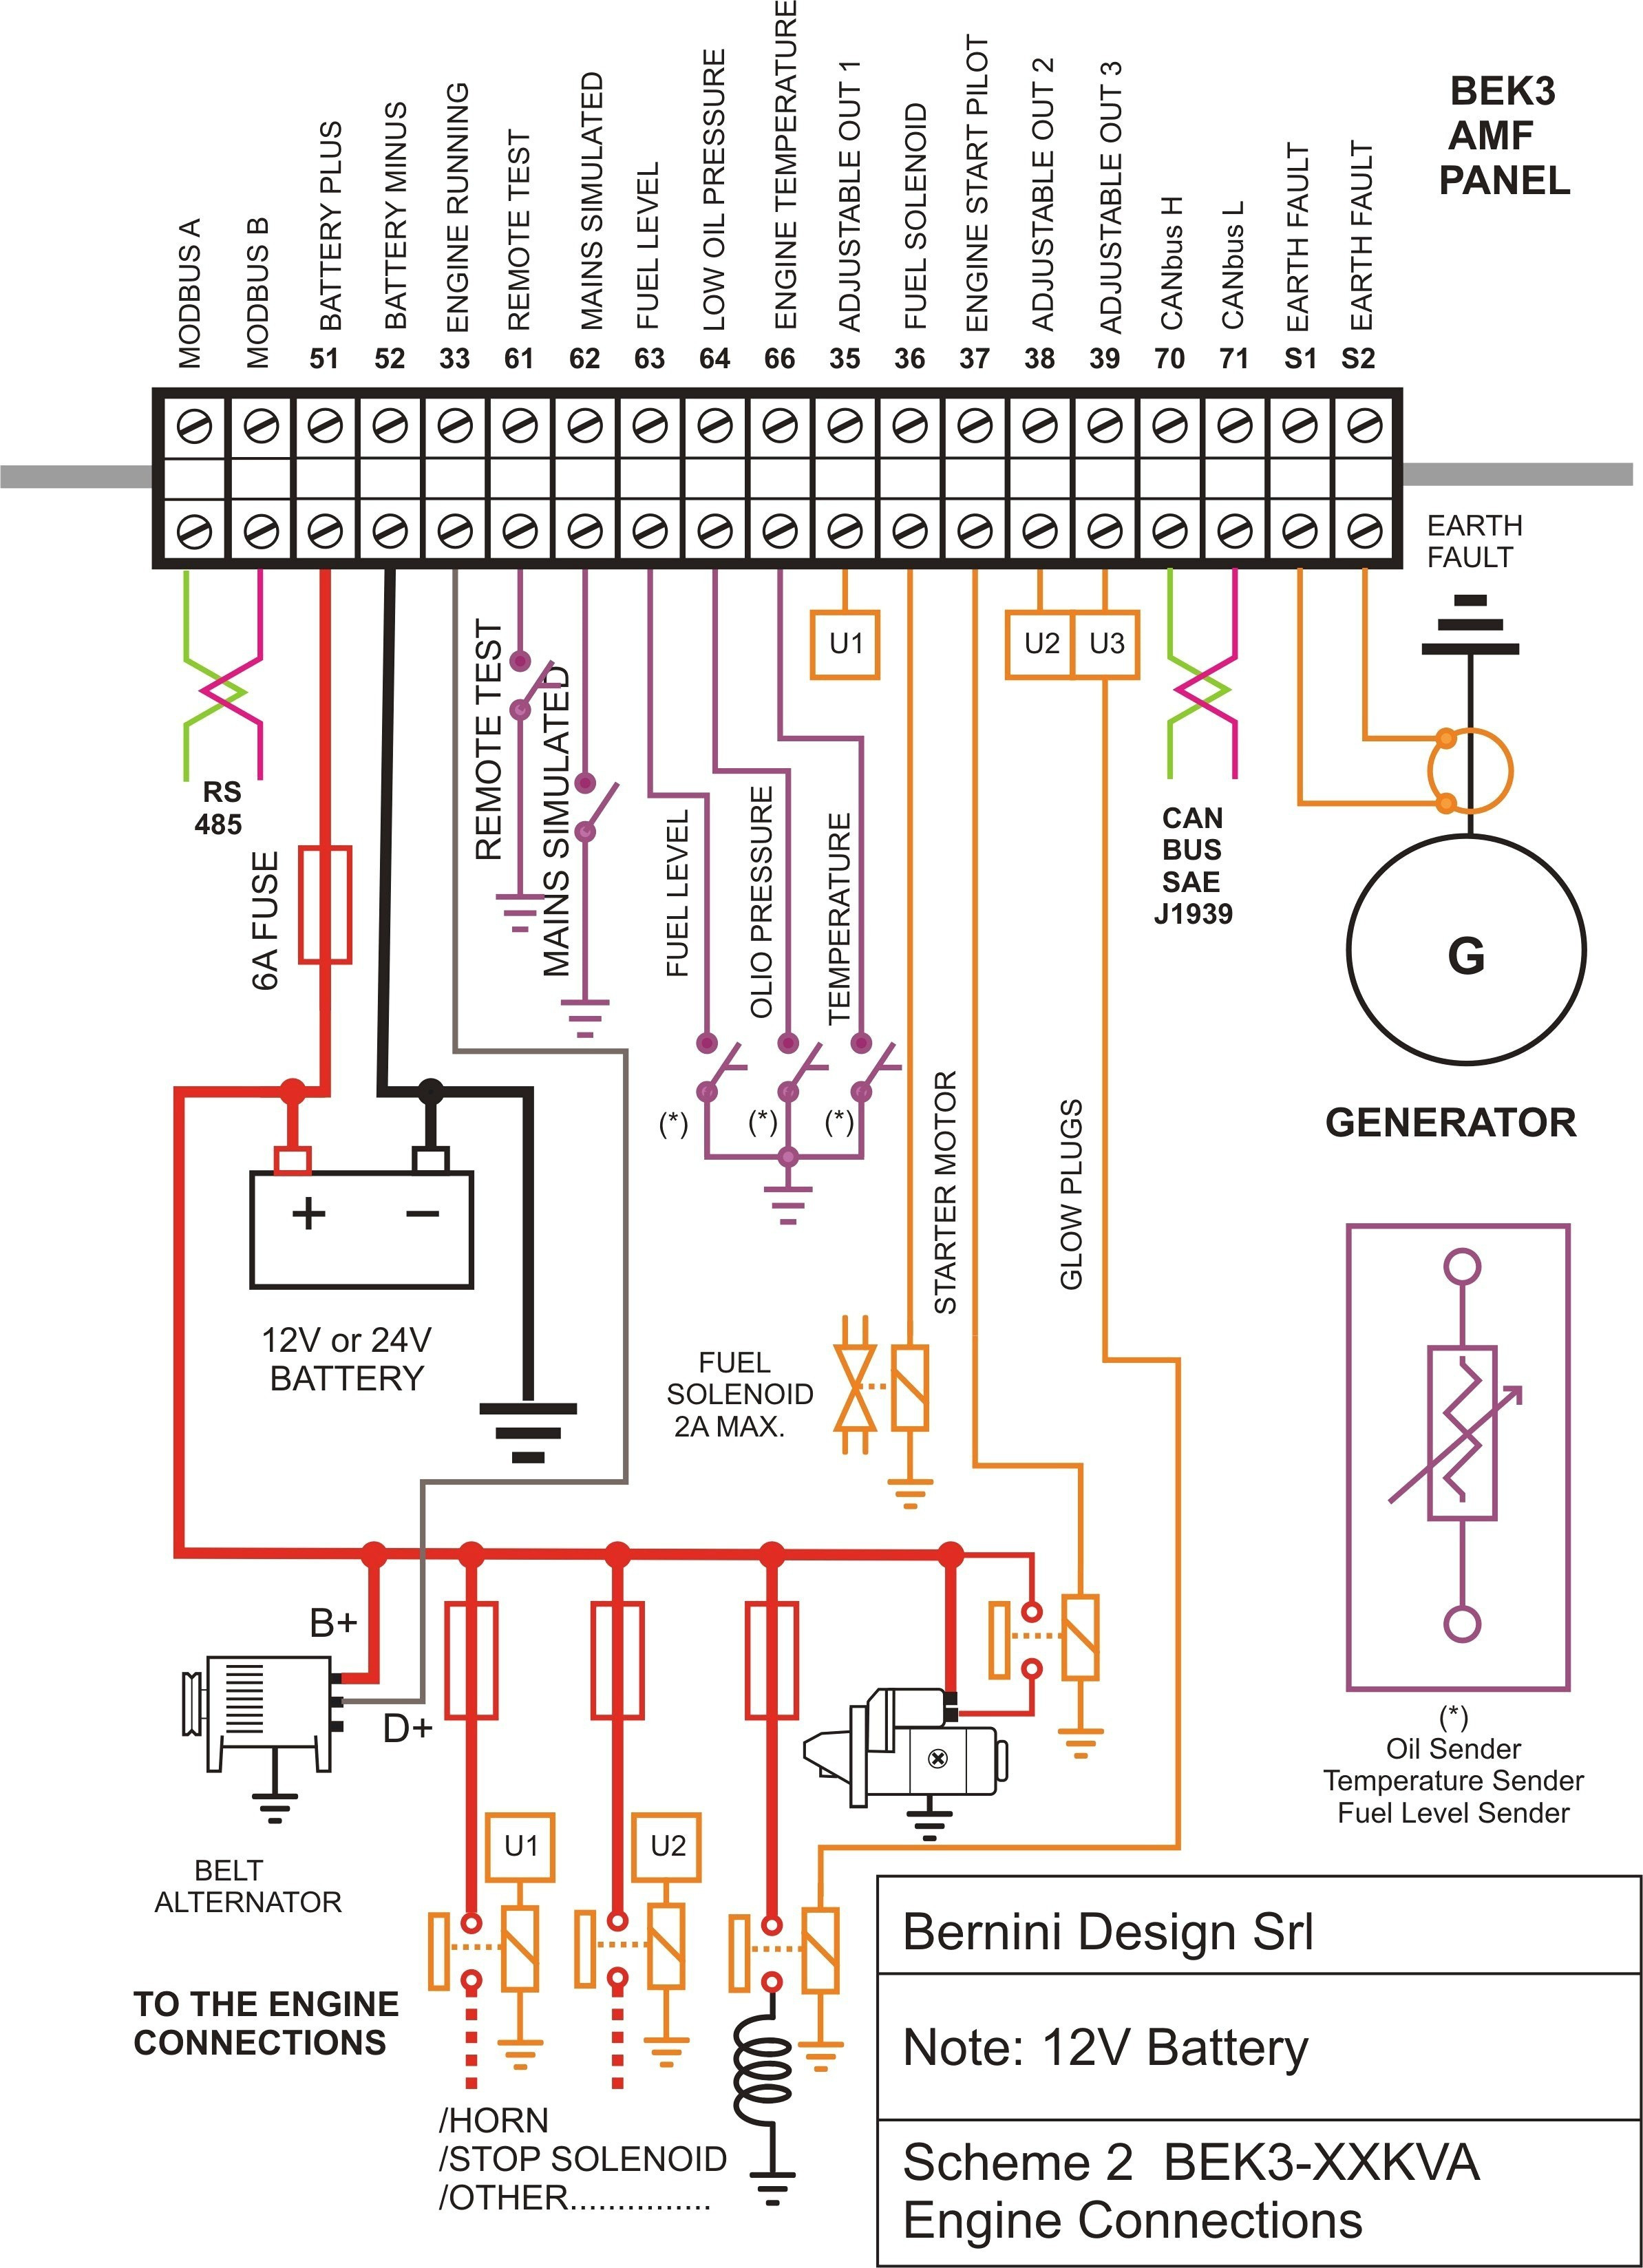 generator wiring diagram and electrical schematics pdf Collection-Aircraft Electrical Wiring Diagram Inspirationa Eletrical Wiring Diagram Manual Save Electrical Wiring Diagram Pdf 12-f